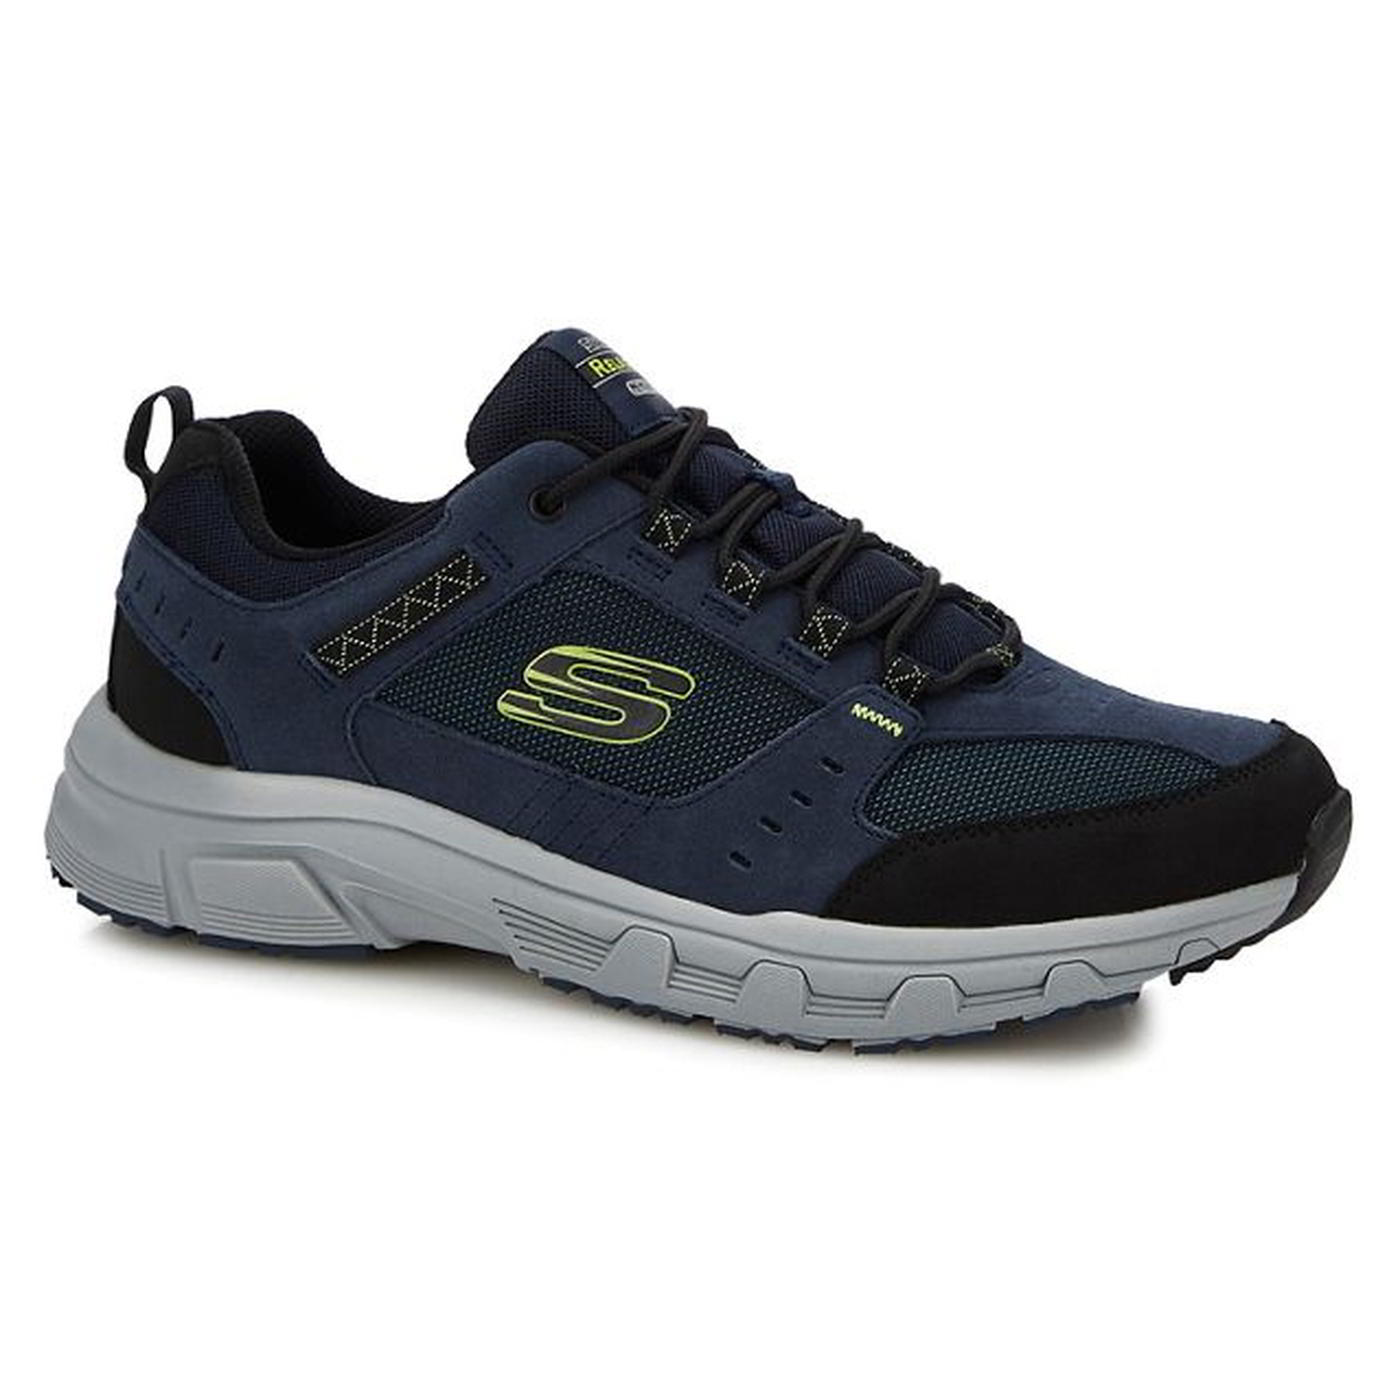 Skechers Mens Oak Canyon Relaxed Fit Shoes Trainers Navy Lime